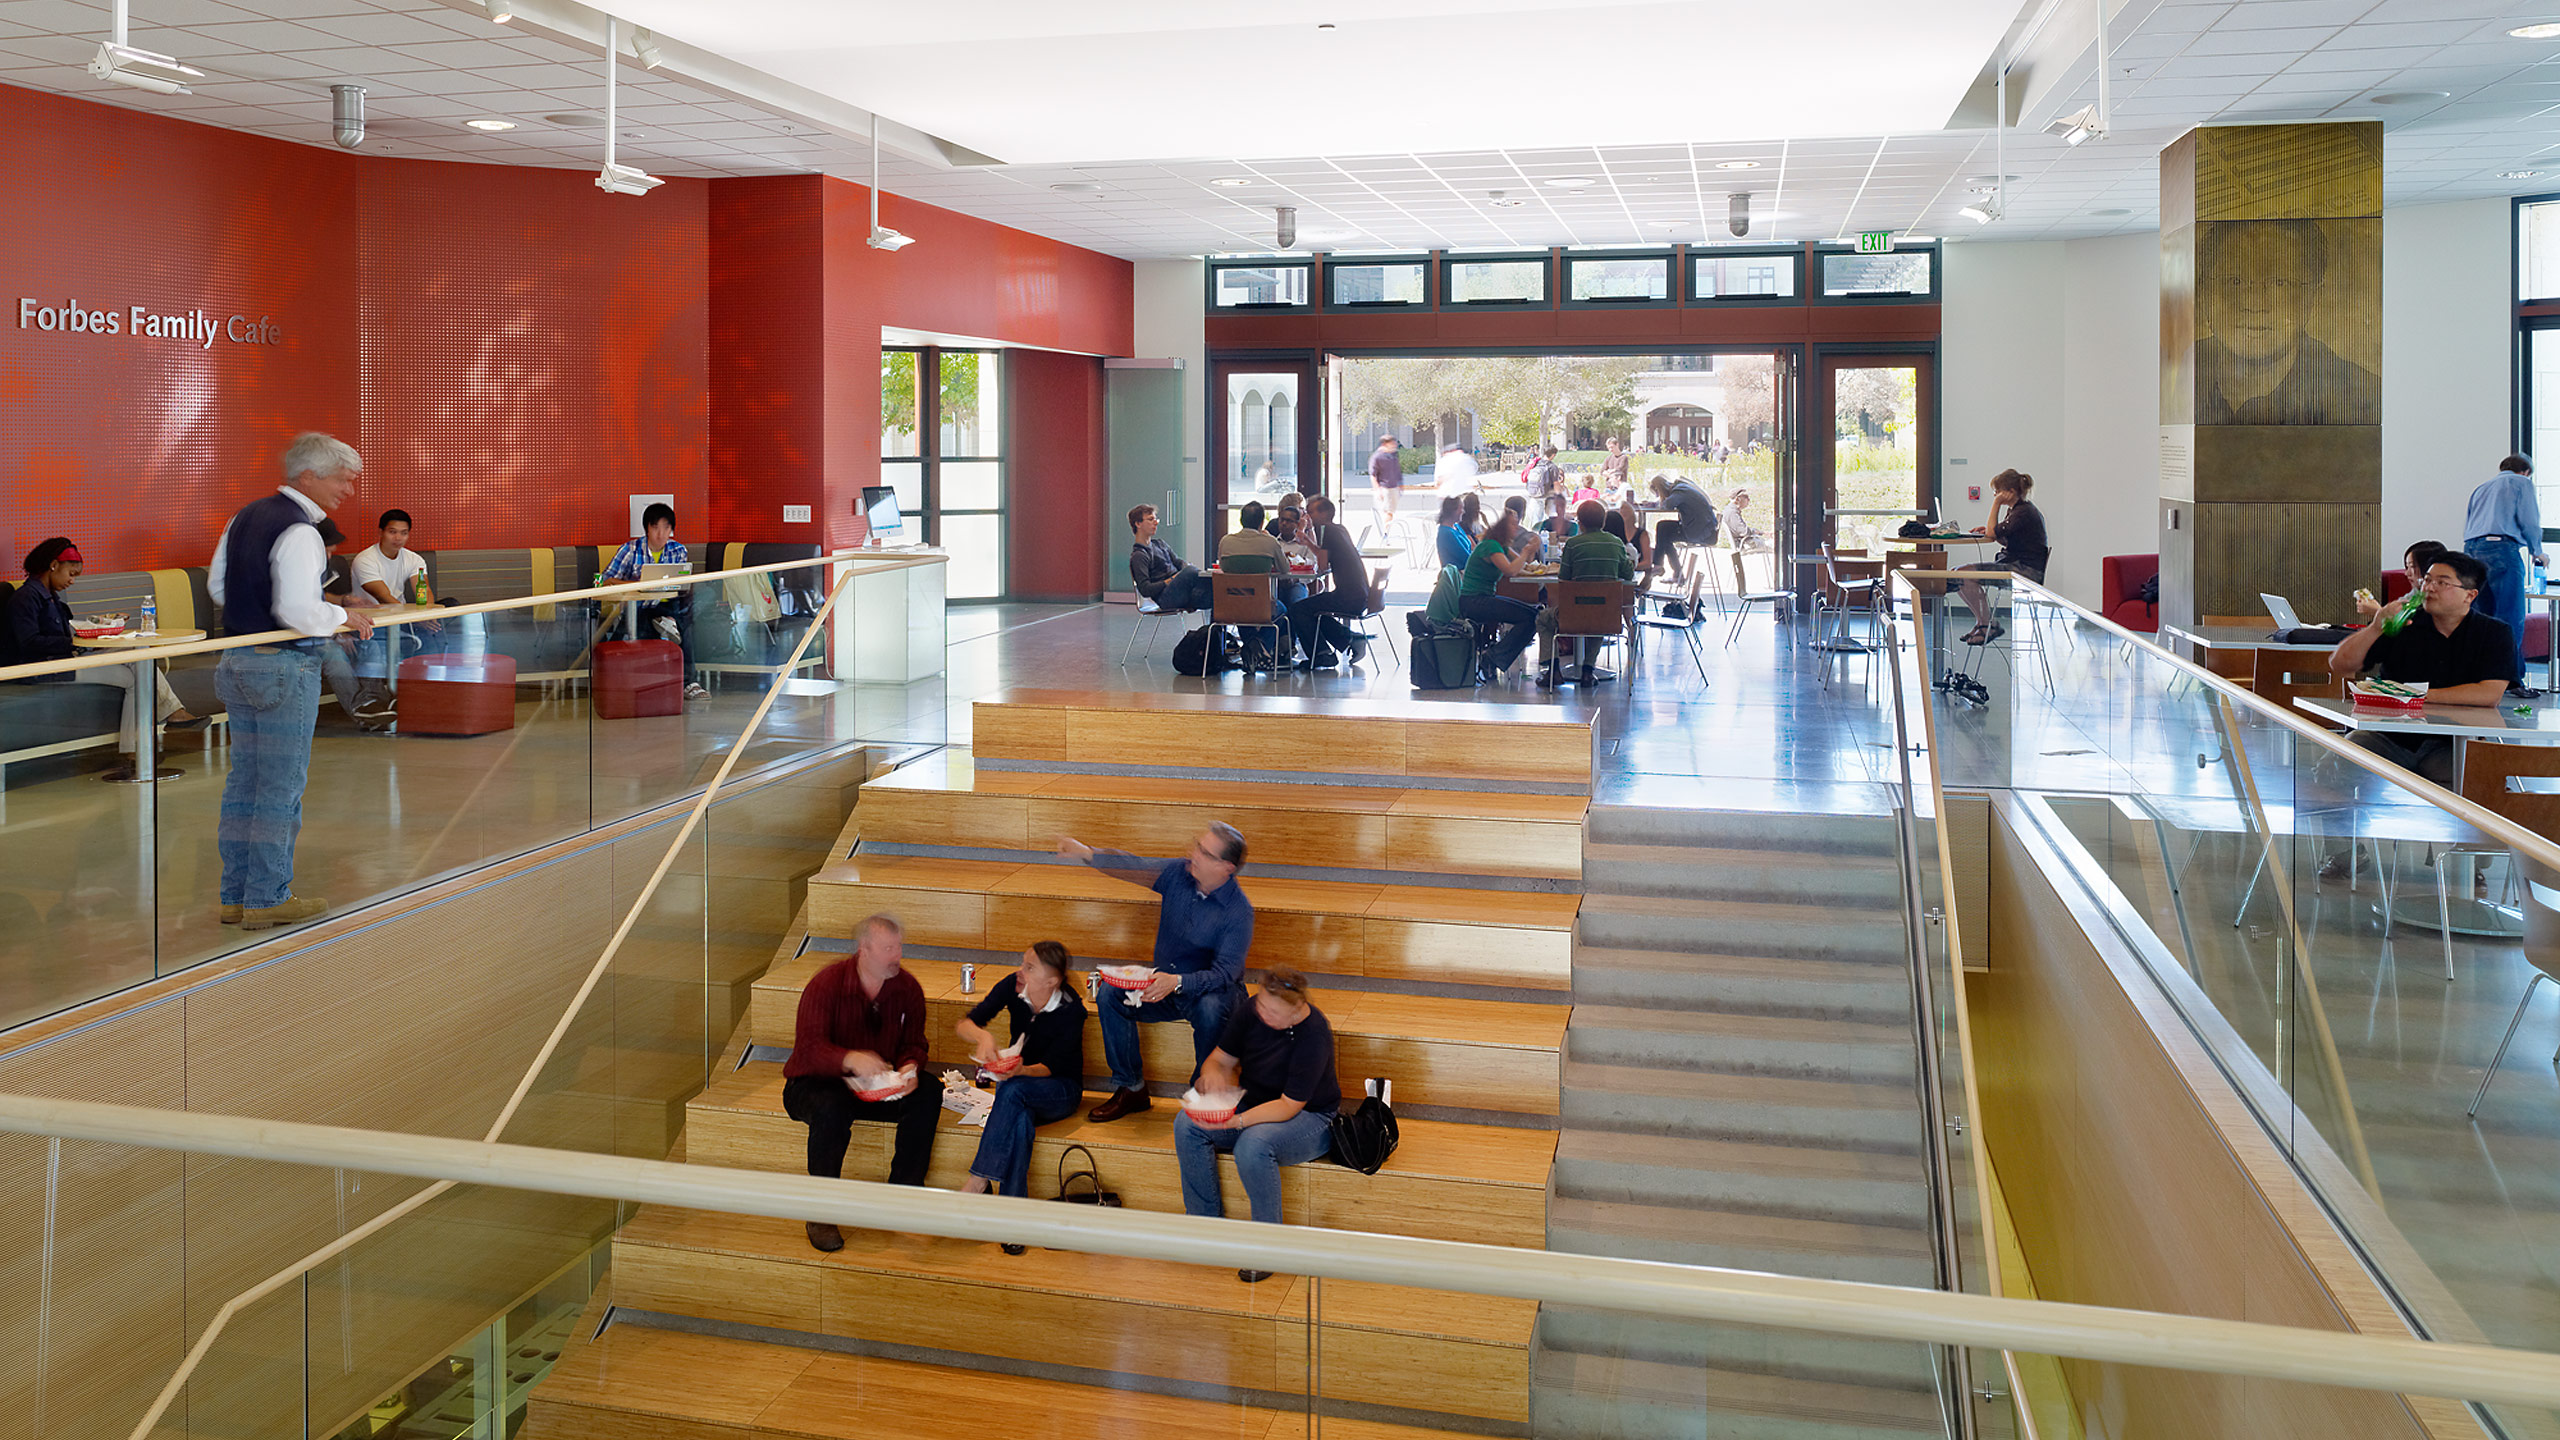 Jen-Hsun Huang Engineering Center – Stanford University / image 5